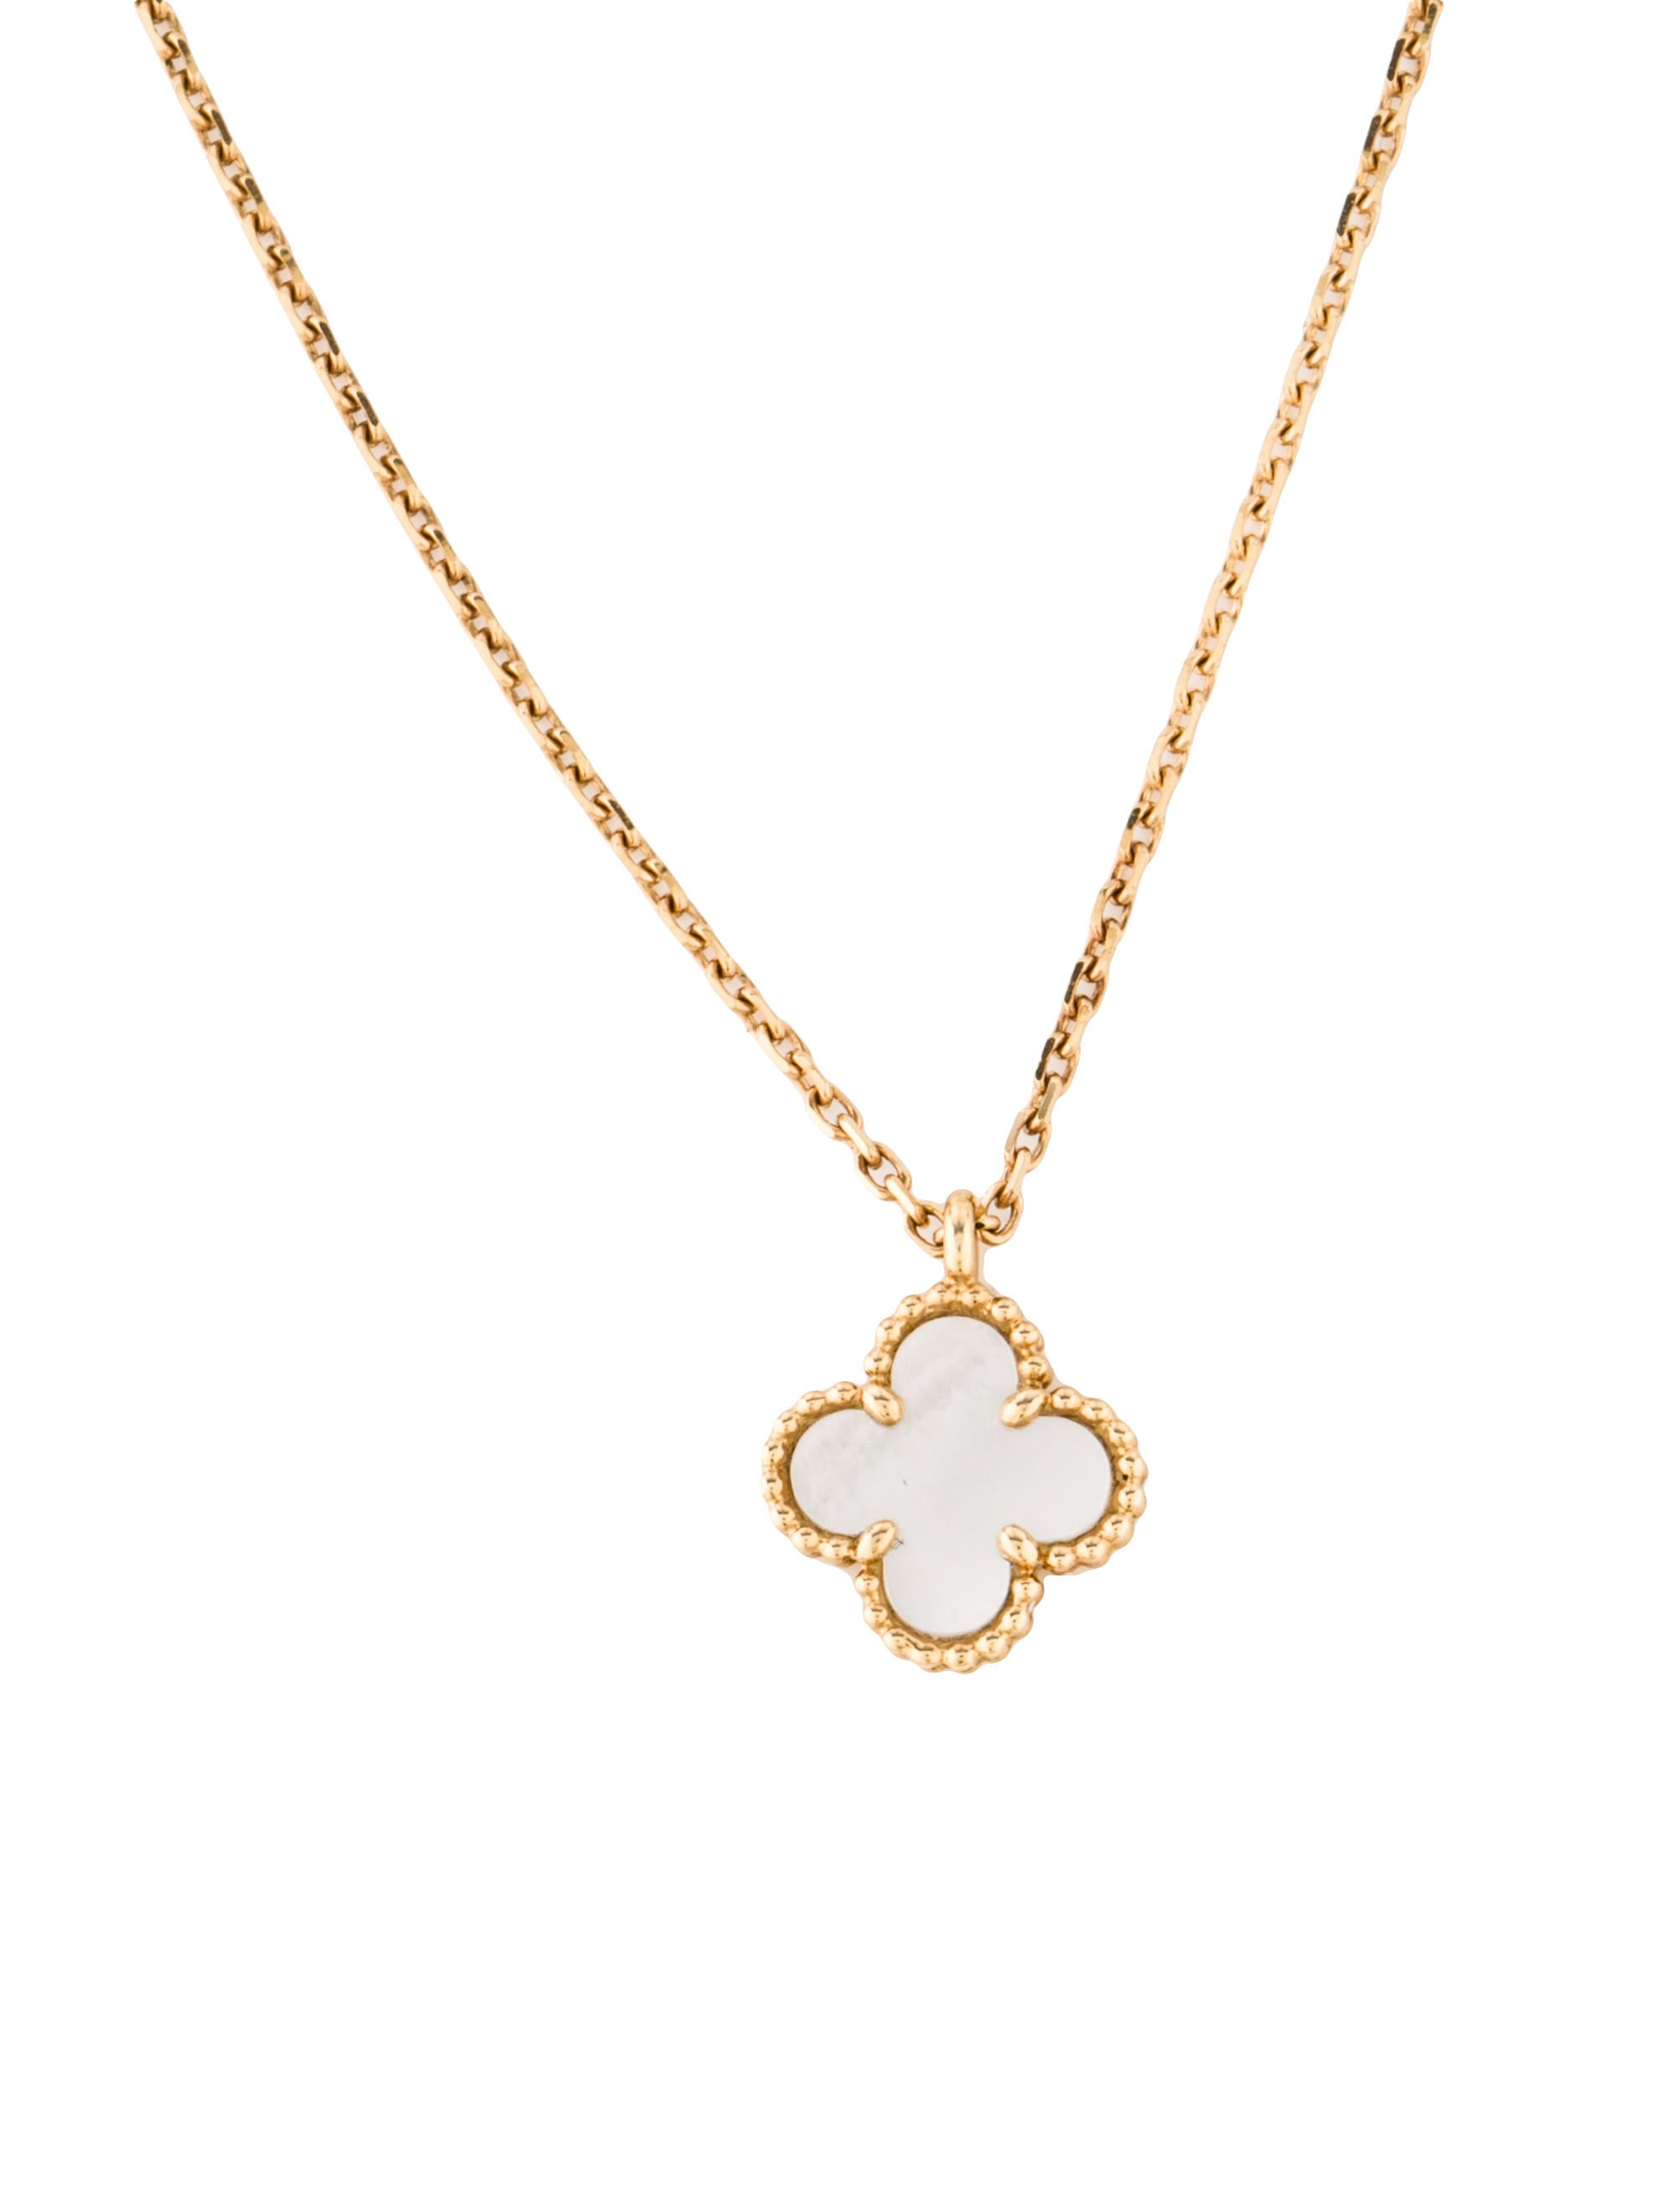 worn van pendant arpels en view cleef collections eu sweet jewelry alhambra